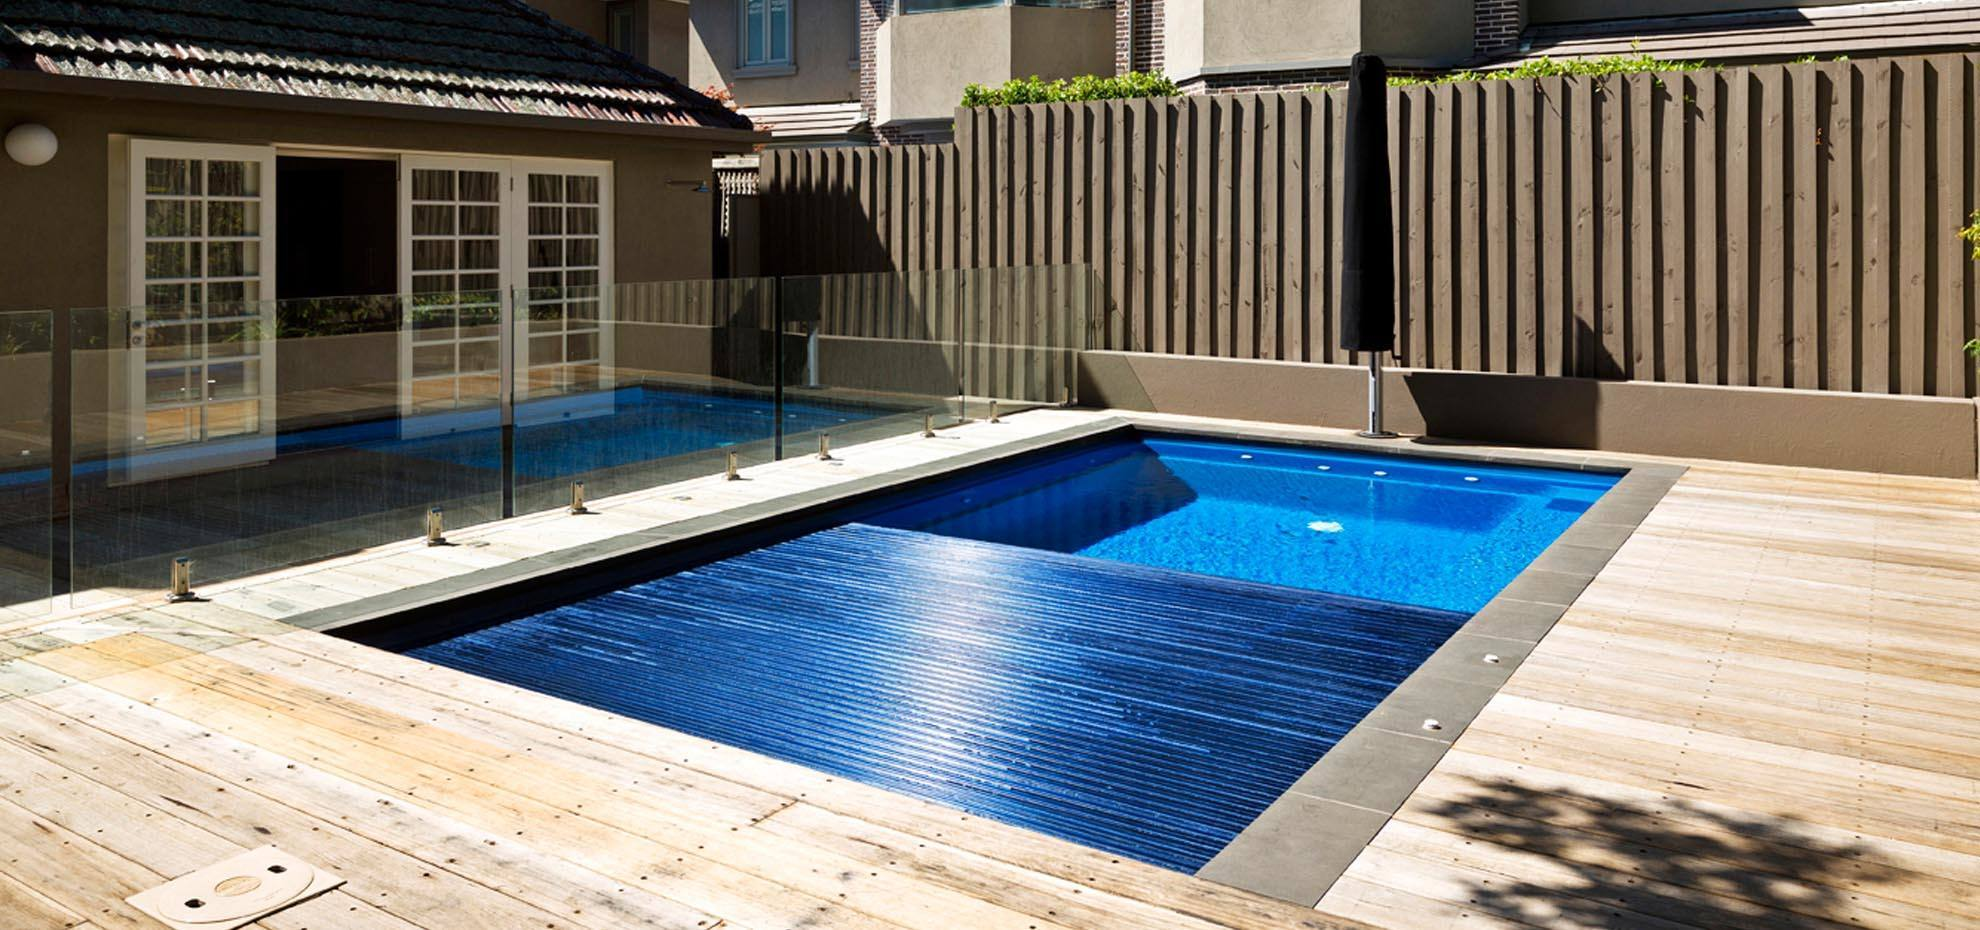 Pool design company in Toronto and Greater Toronto Area